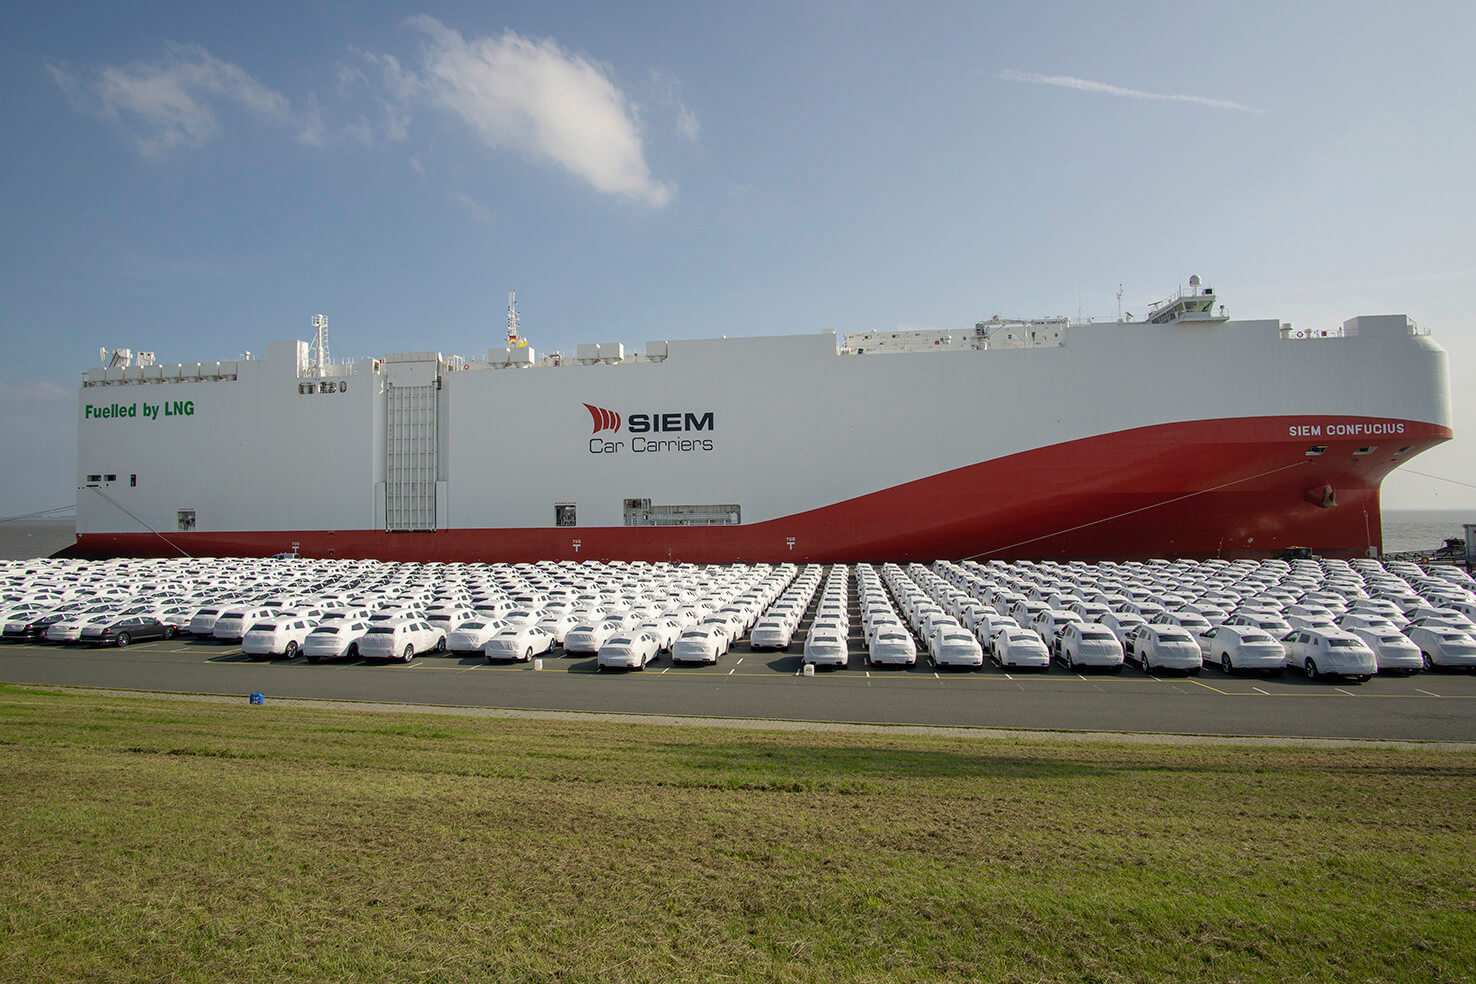 Volkswagen chooses low-emission LNG overseas car freighter